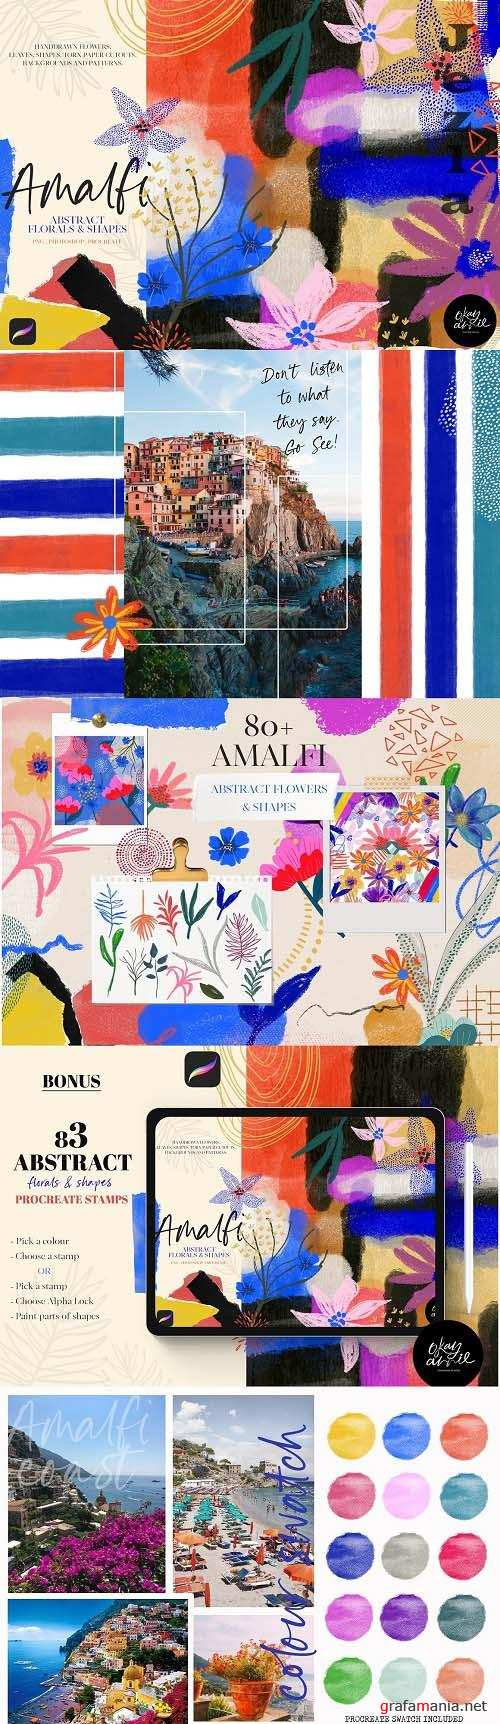 Amalfi: Abstract Floral & Shapes - 6114865